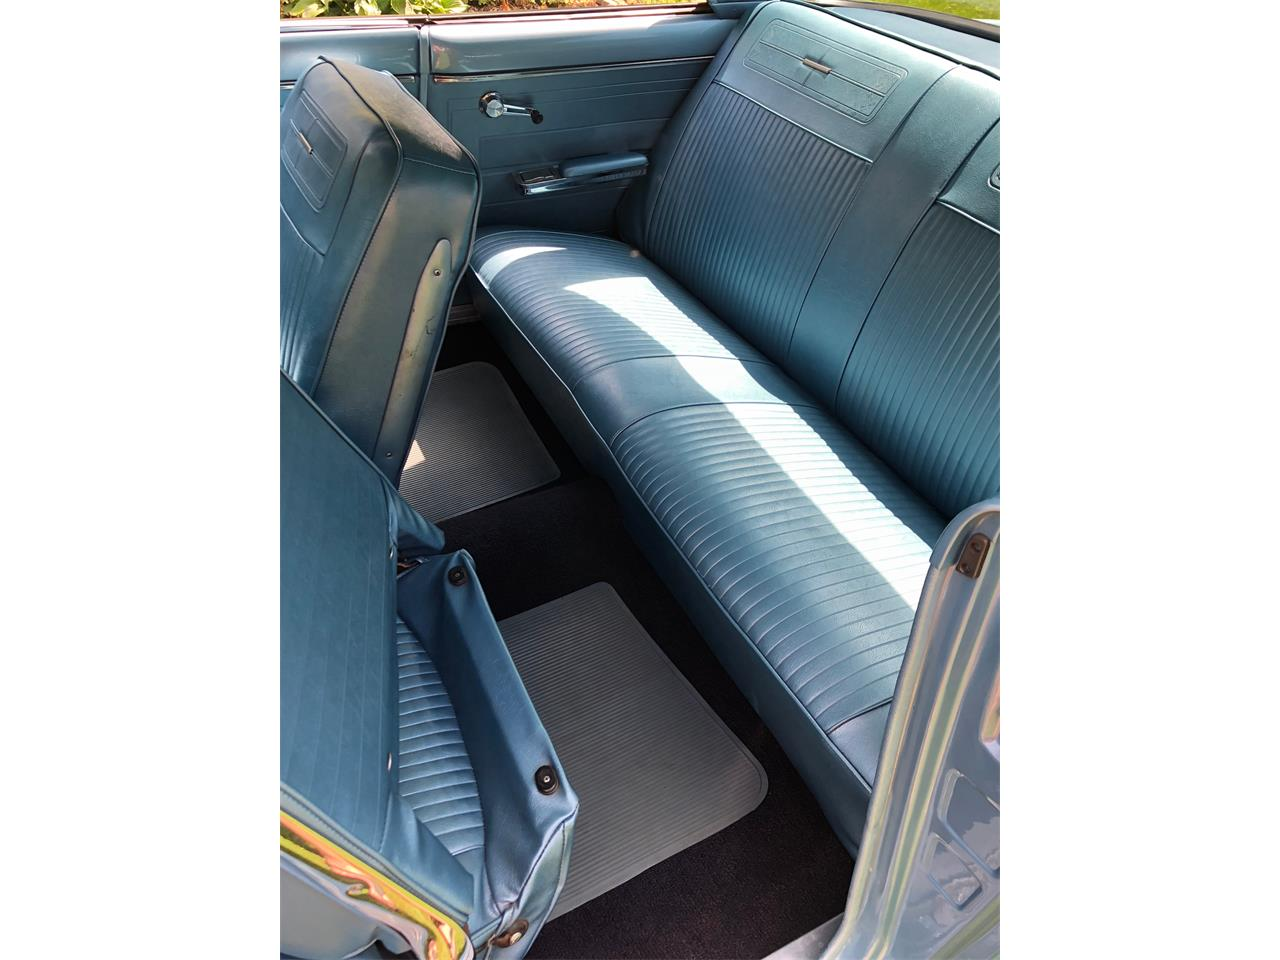 Large Picture of '64 Chevrolet Nova II SS - $18,000.00 Offered by a Private Seller - PZIX